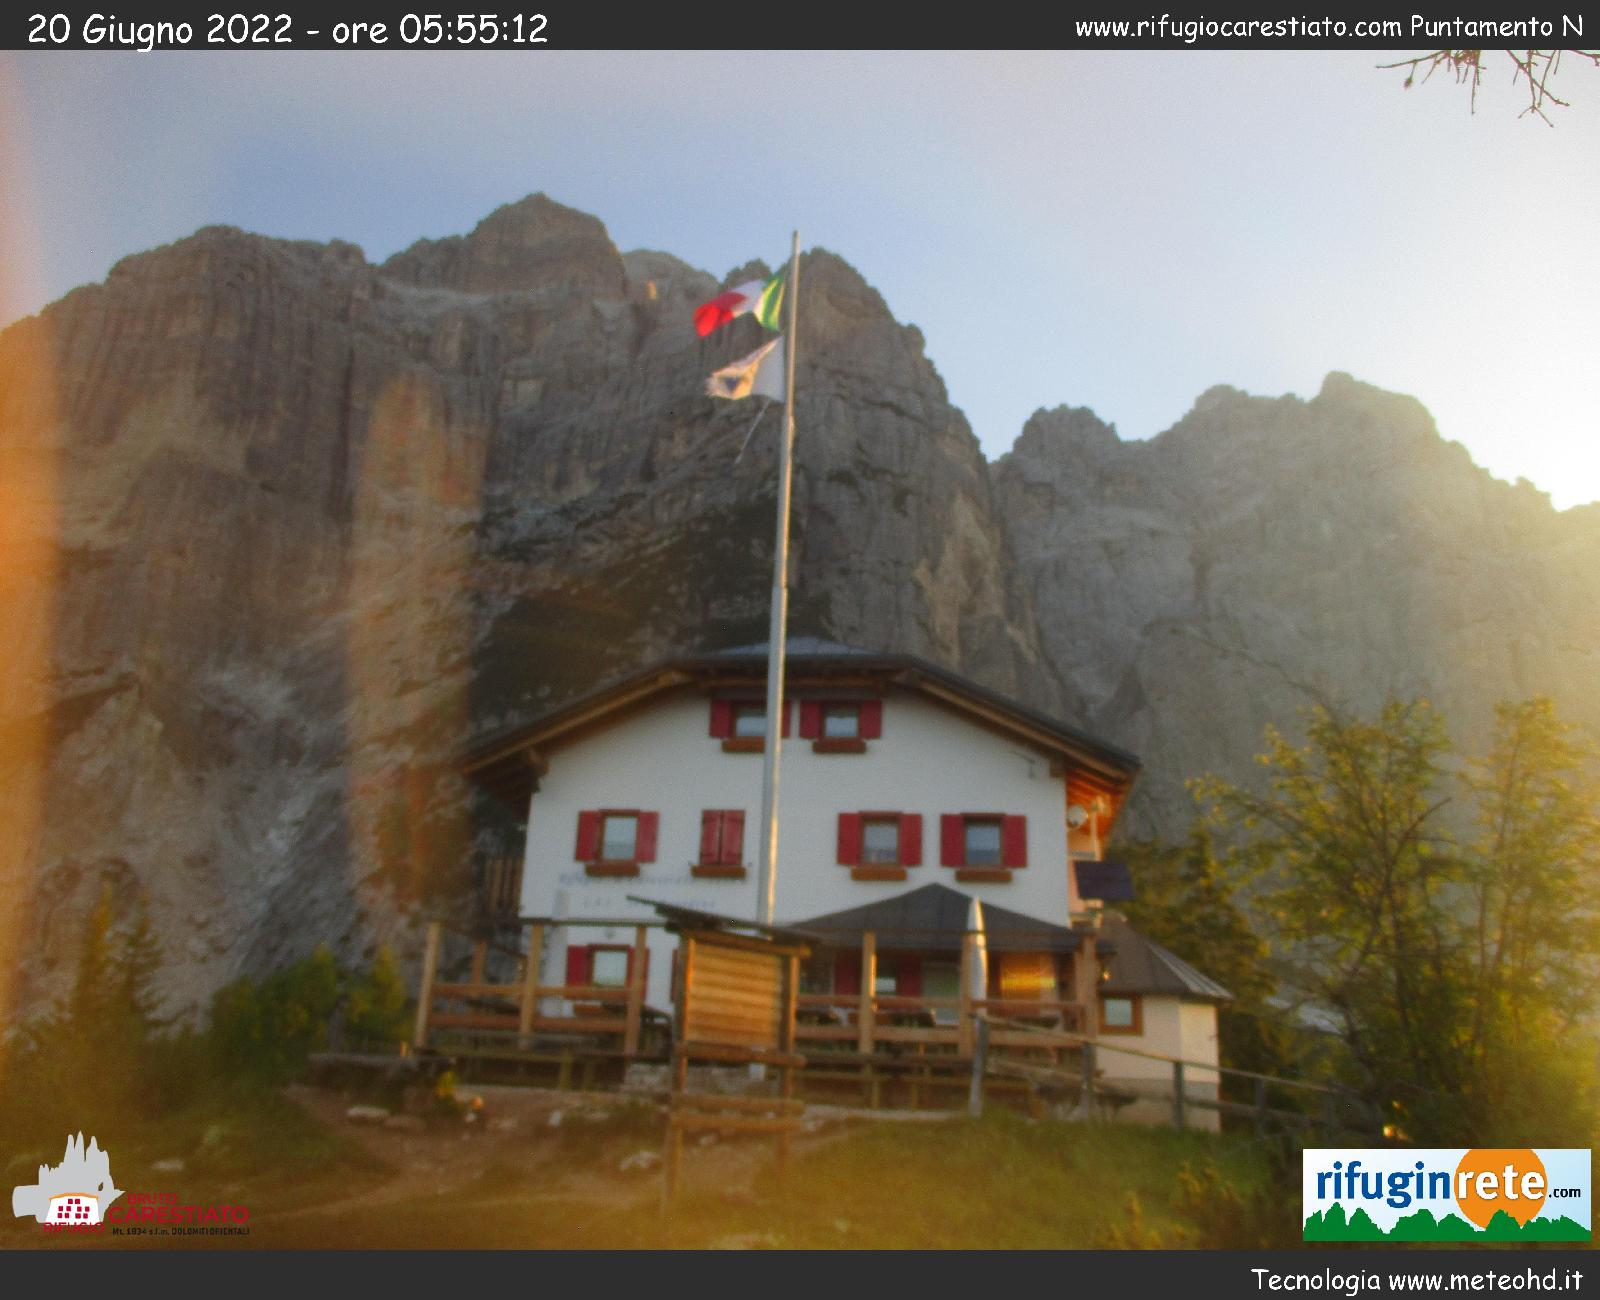 WEBCAM RIFUGIO CARESTIATO